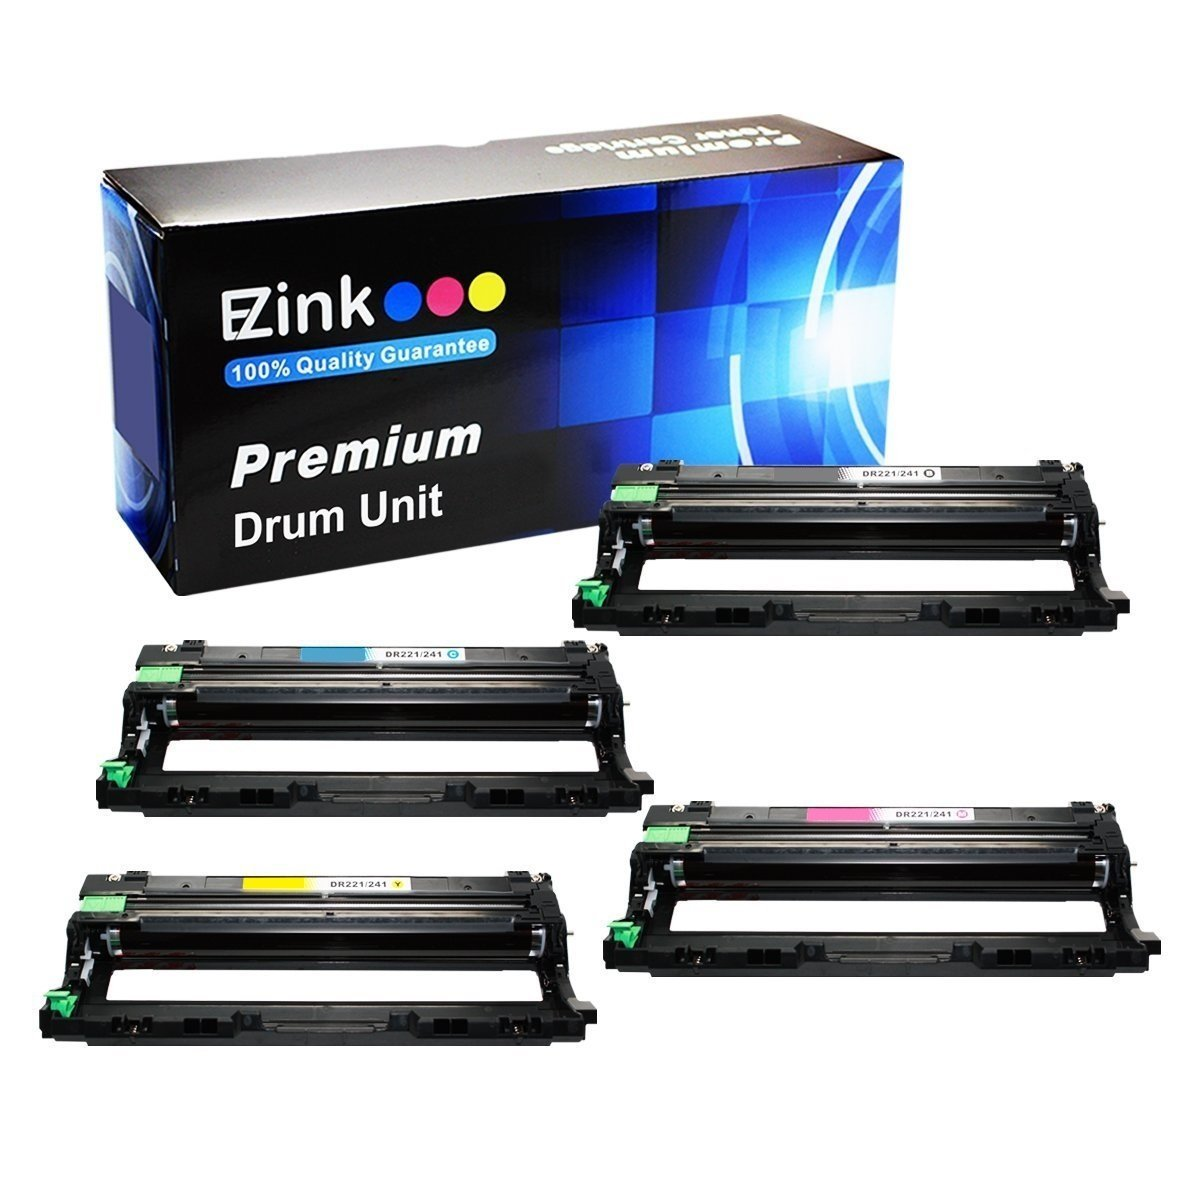 E-Z Ink (TM) Compatible Drum Unit Replacement For Brother DR221CL (1 Black, 1 Cyan, 1 Magenta, 1 Yellow Drum Unit) Compatible With HL-3140CW HL-3170CDW MFC-9130CW MFC-9330CDW MFC-9340CDW Laser Printer